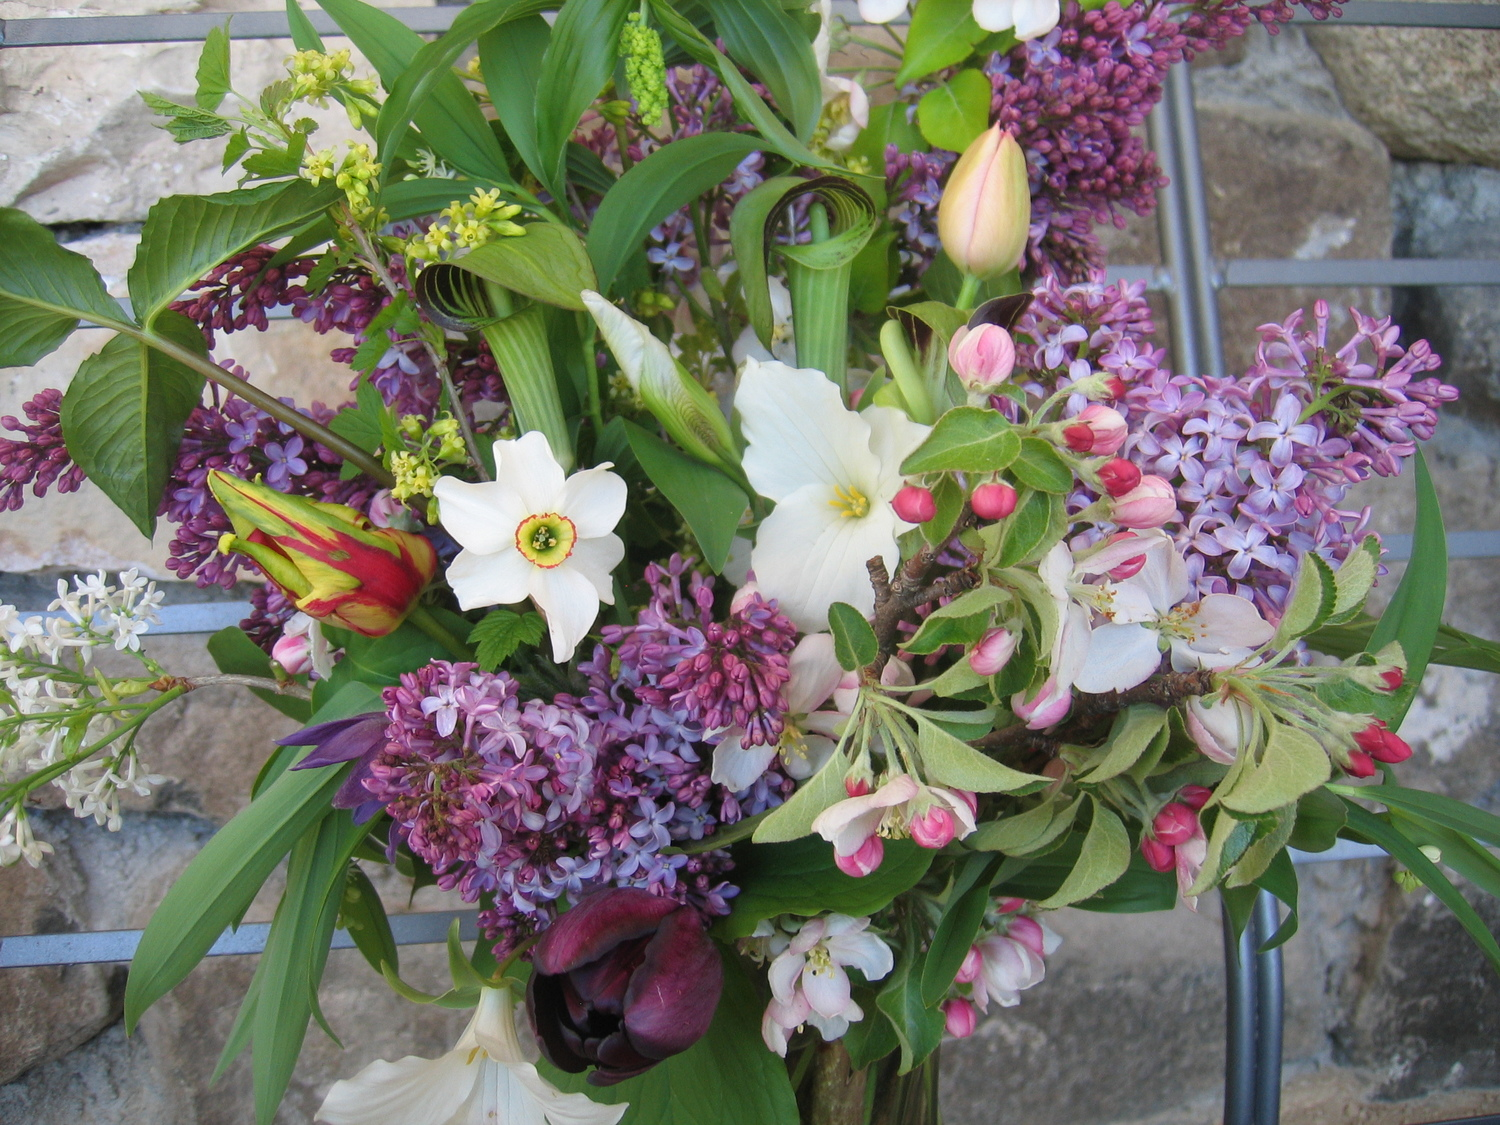 Spring Flower Bouquet Home Delivery Csa 426 525 2017 Willoway Farm